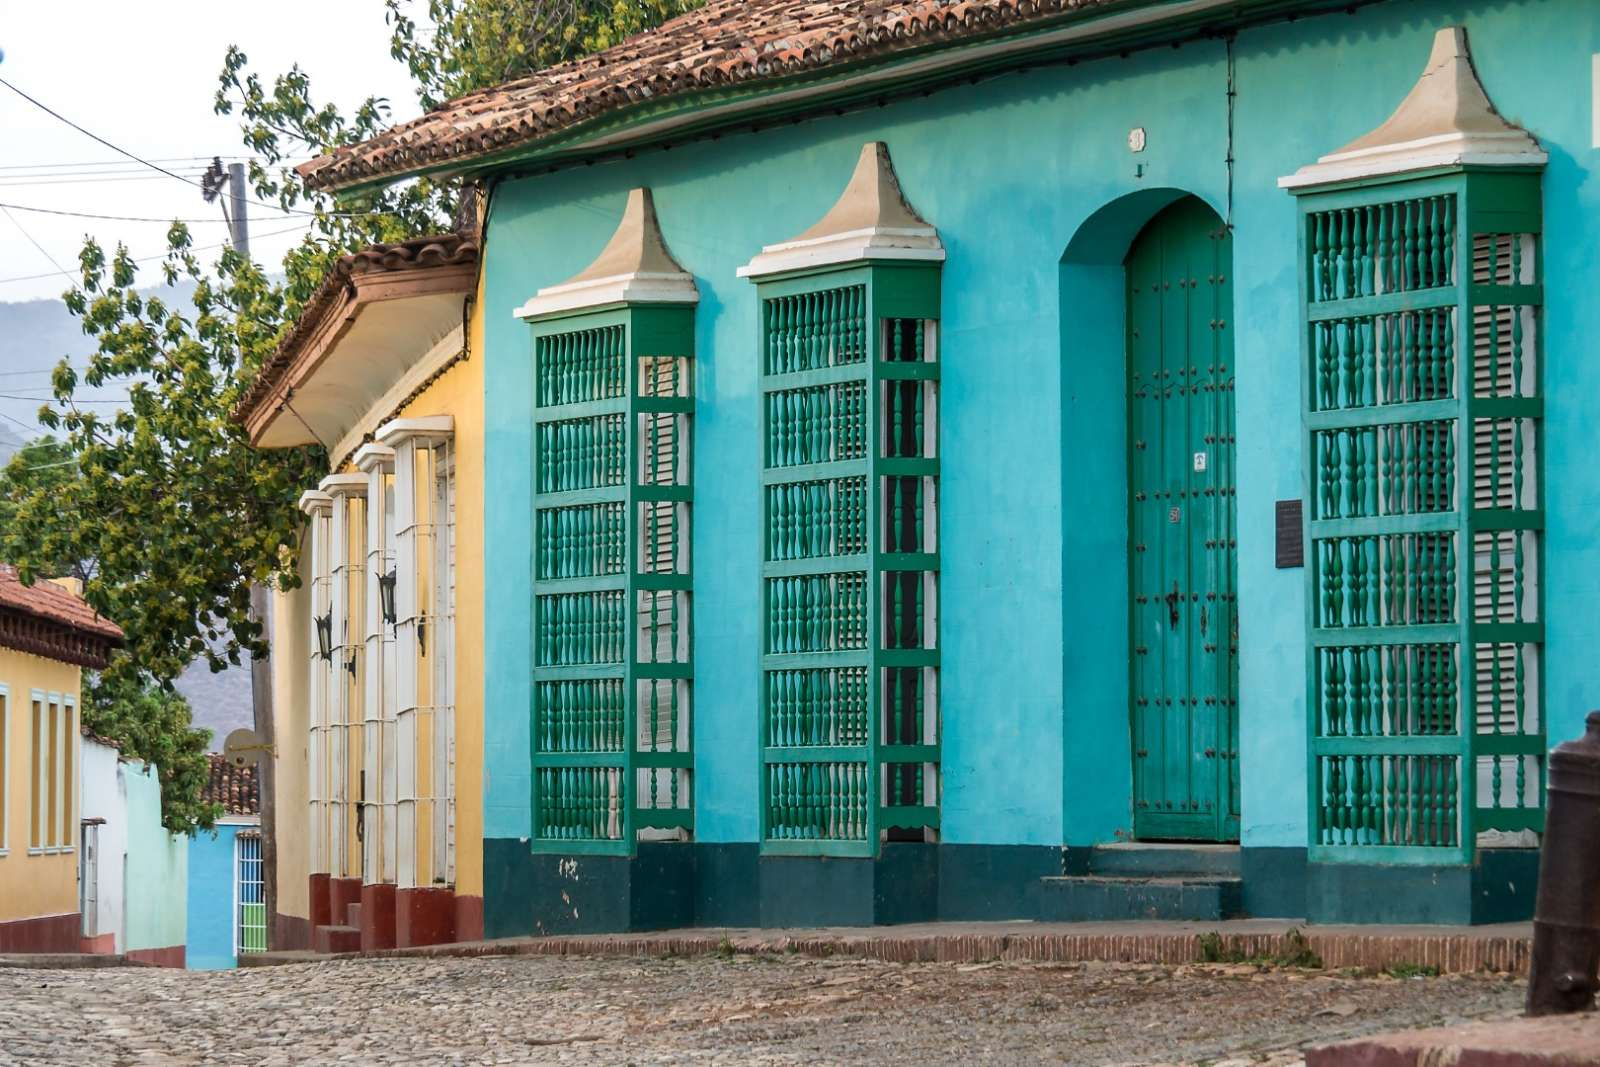 Colourful house in Trinidad, Cuba